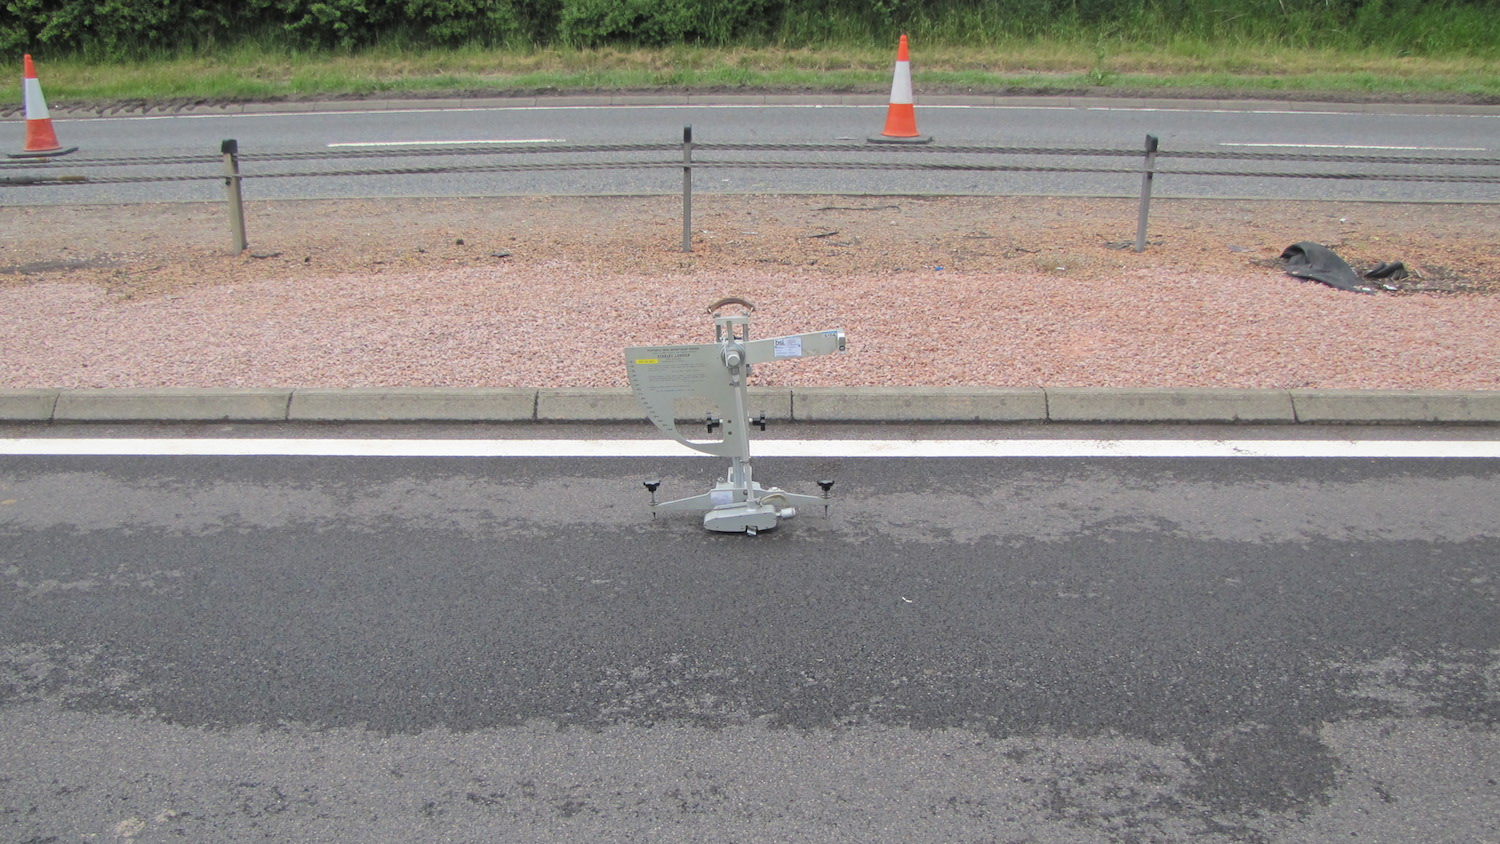 Skid resistance testing on the A90 in Scotland.